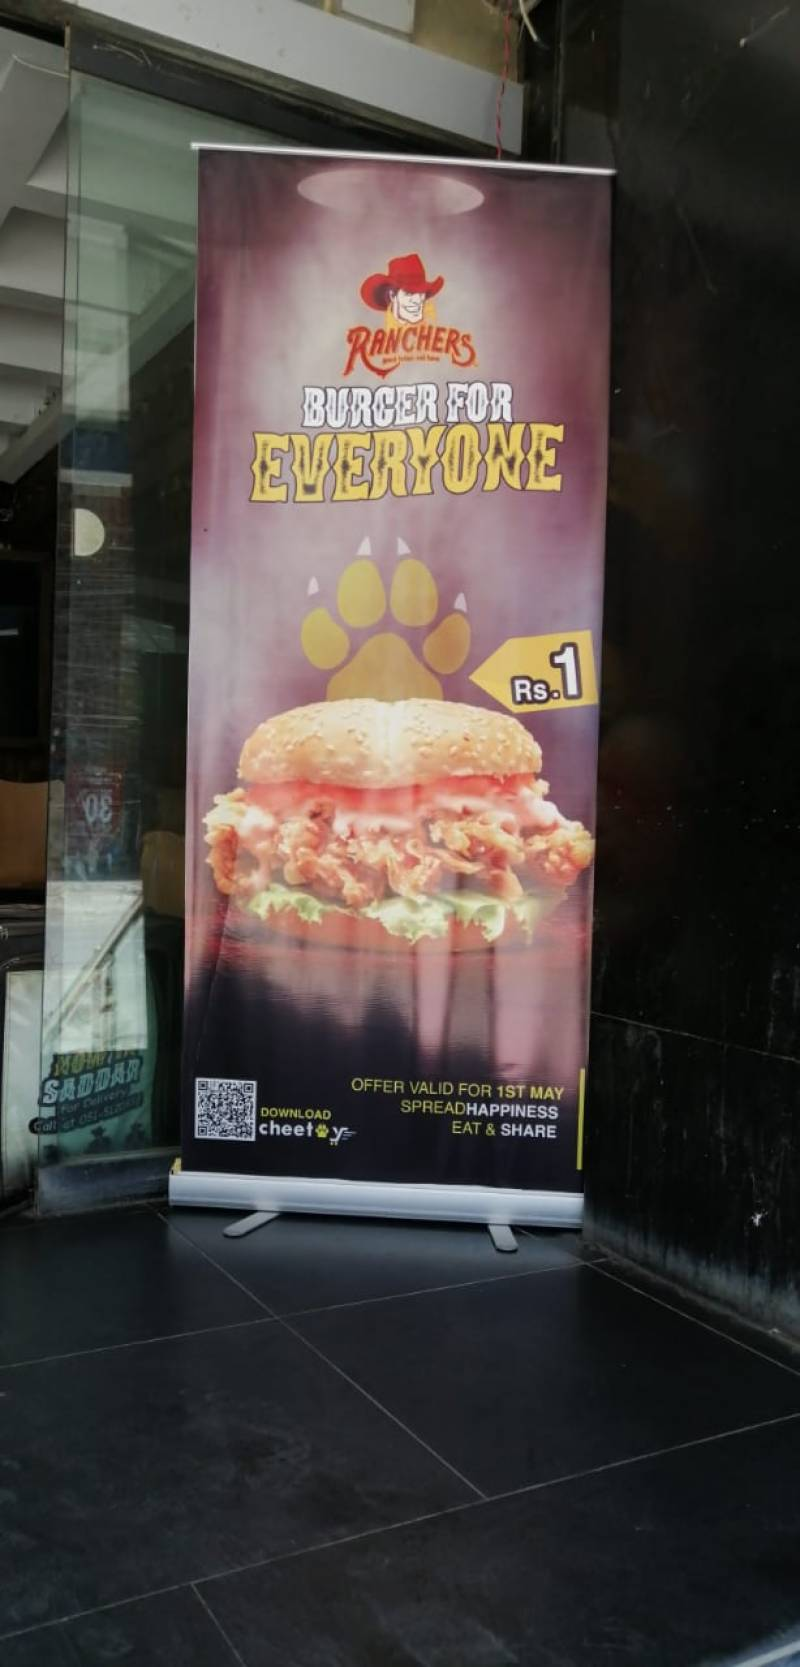 One deal to rule them all—Cheetay making waves with its PKR 1 burger deal in Islamabad and Rawalpindi